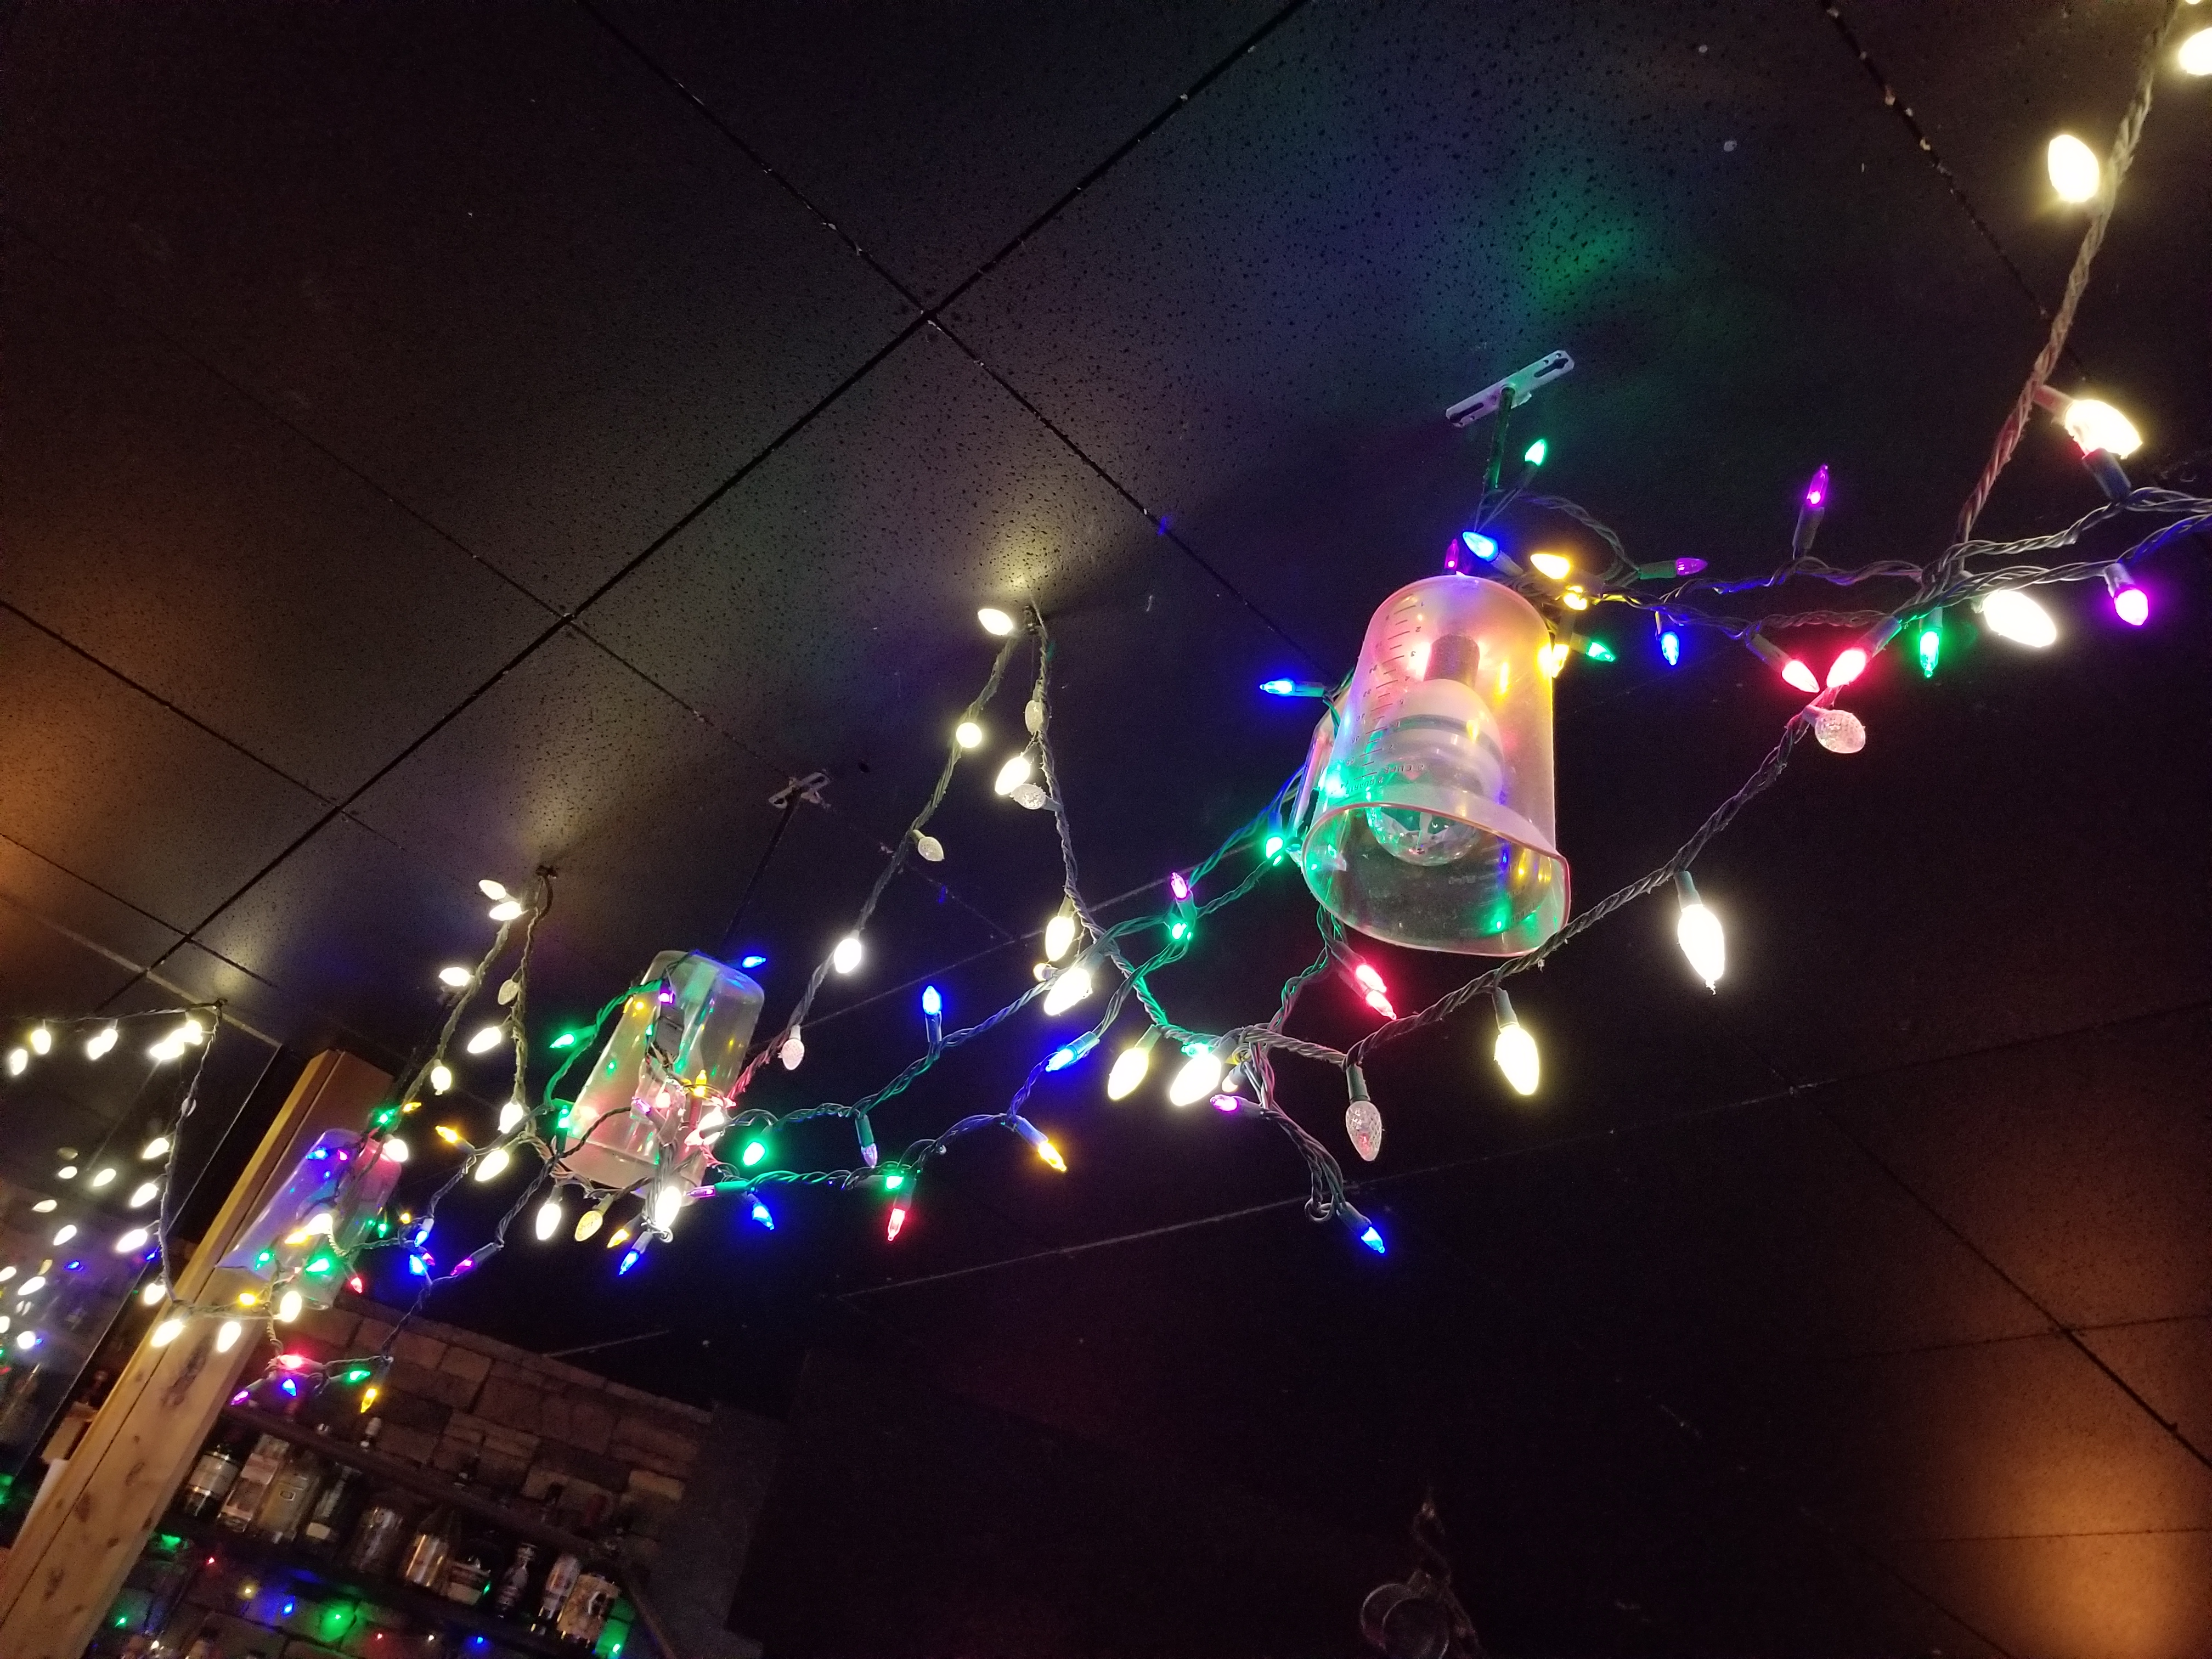 How very Stranger Things with the Christmas lights...